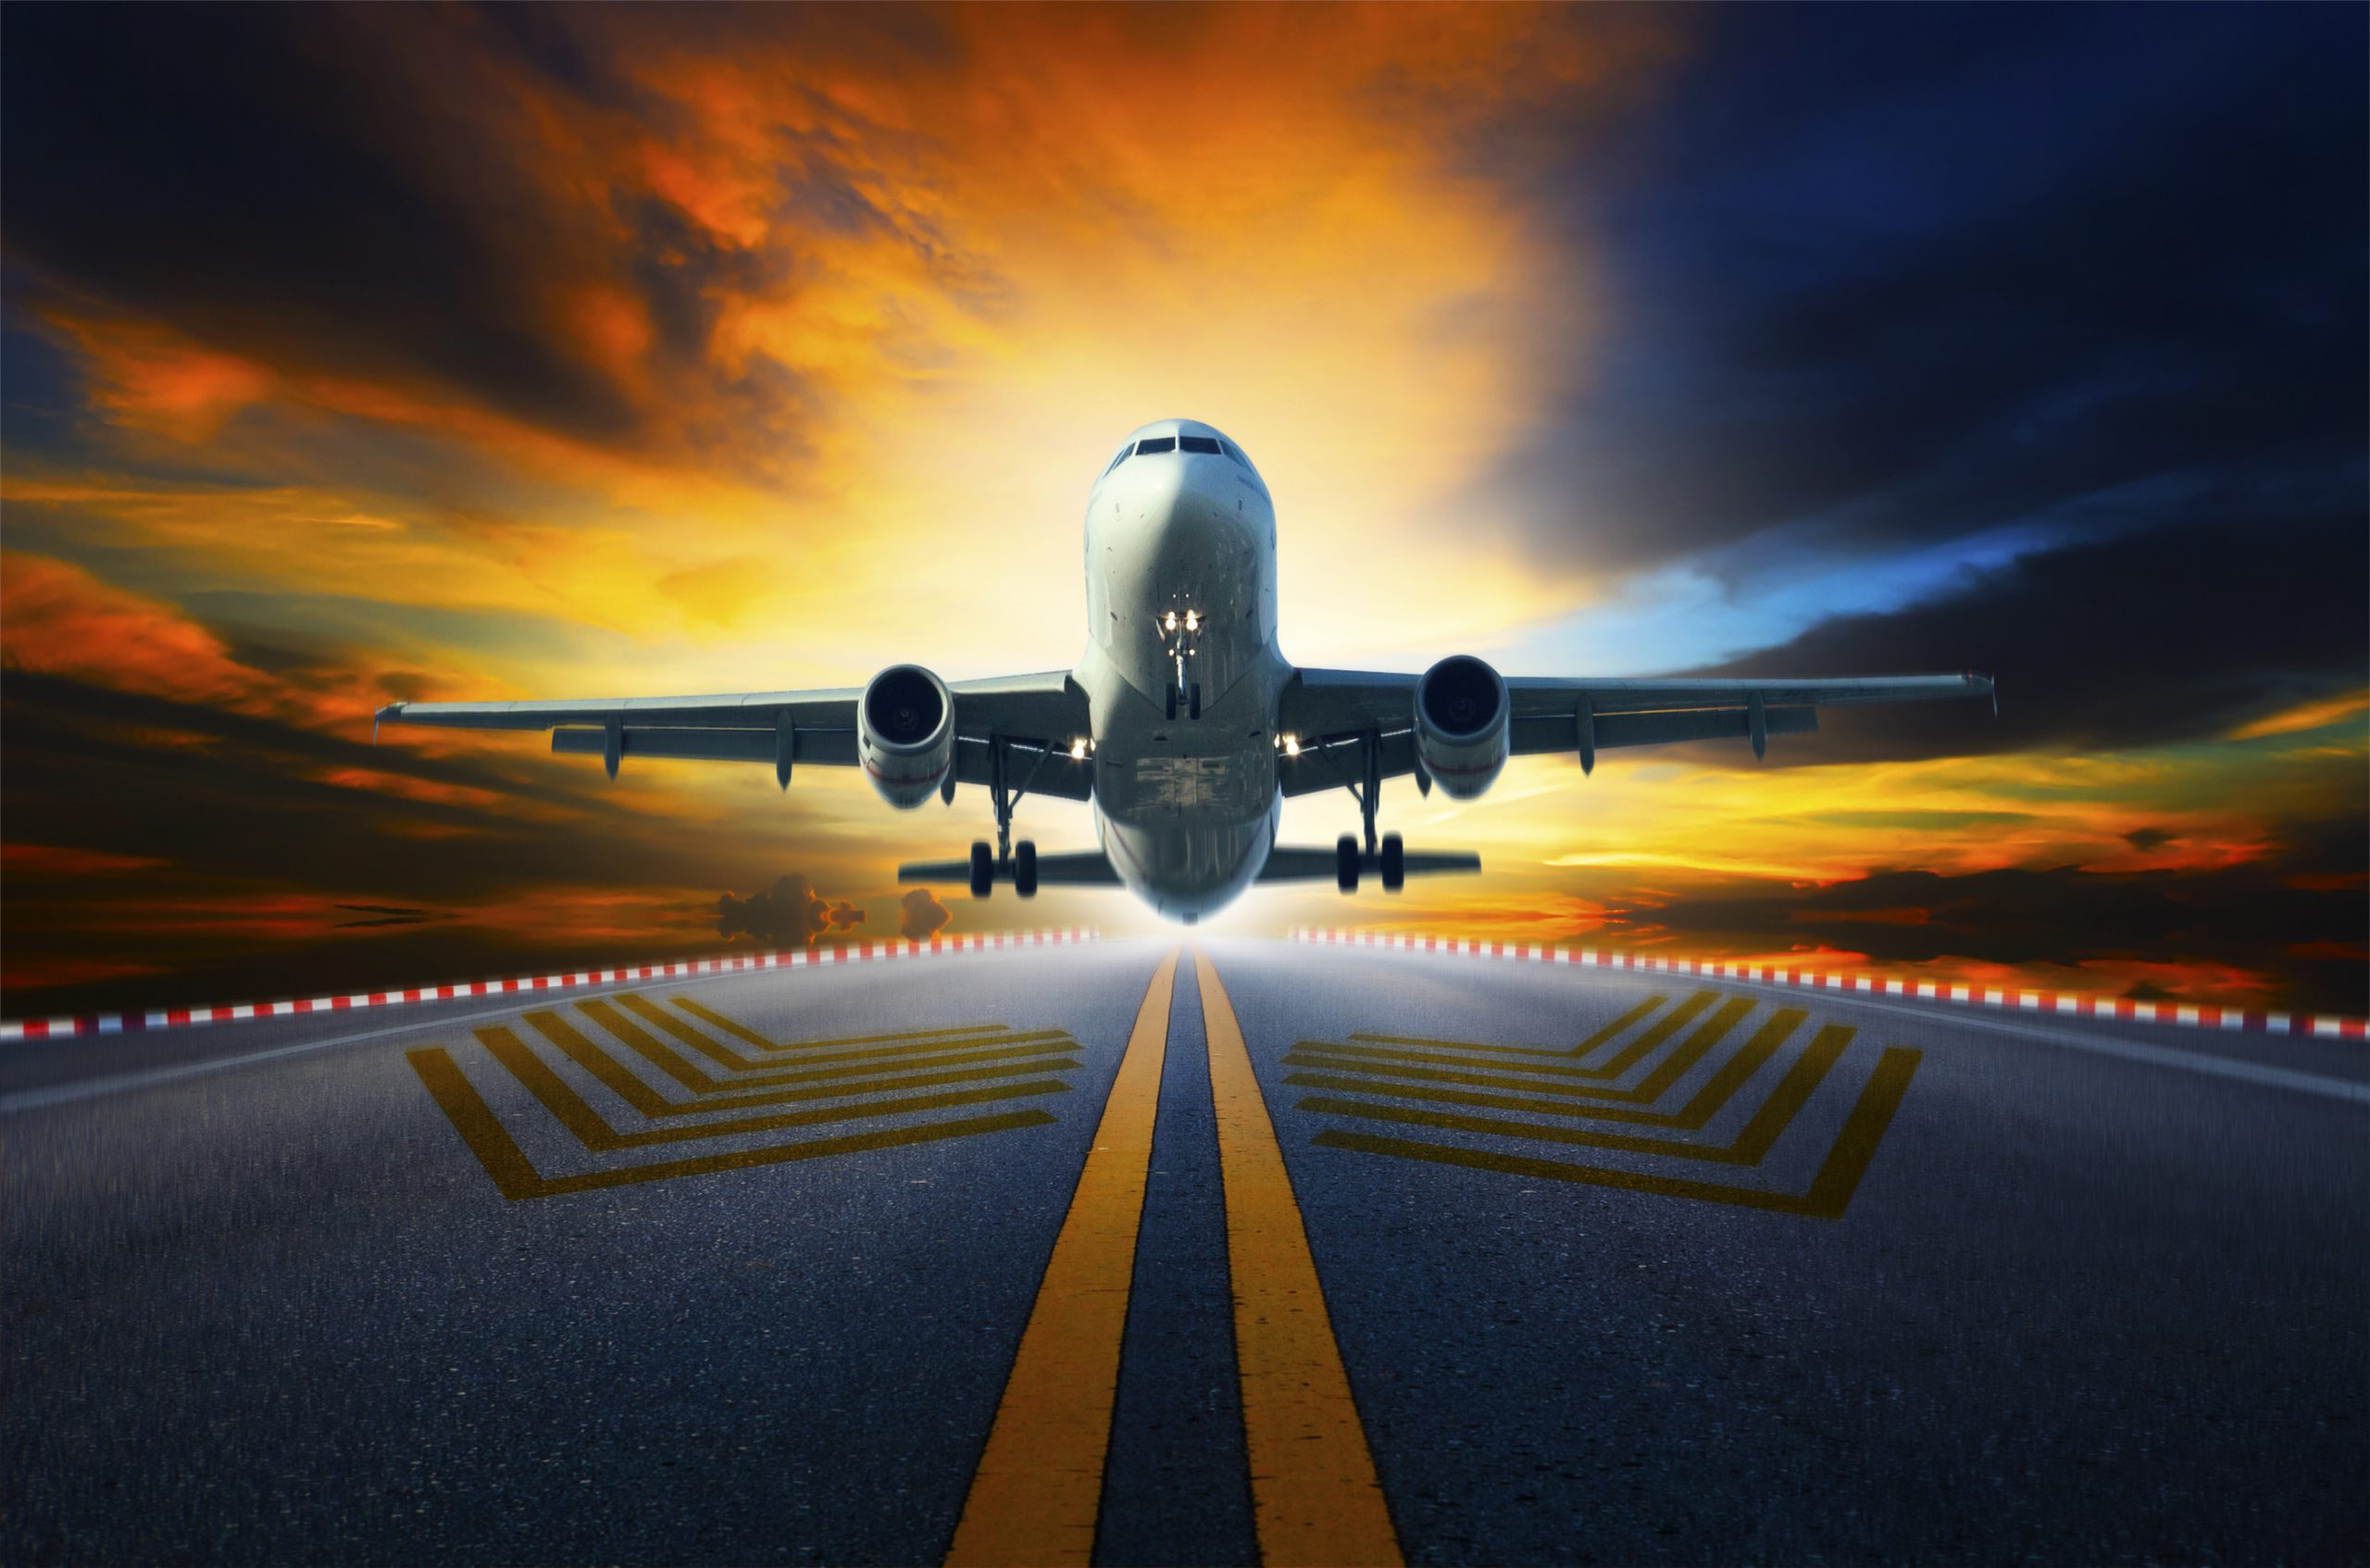 passenger jet plane preparing to take off from airport runways with motion blur against beautiful dusky sky